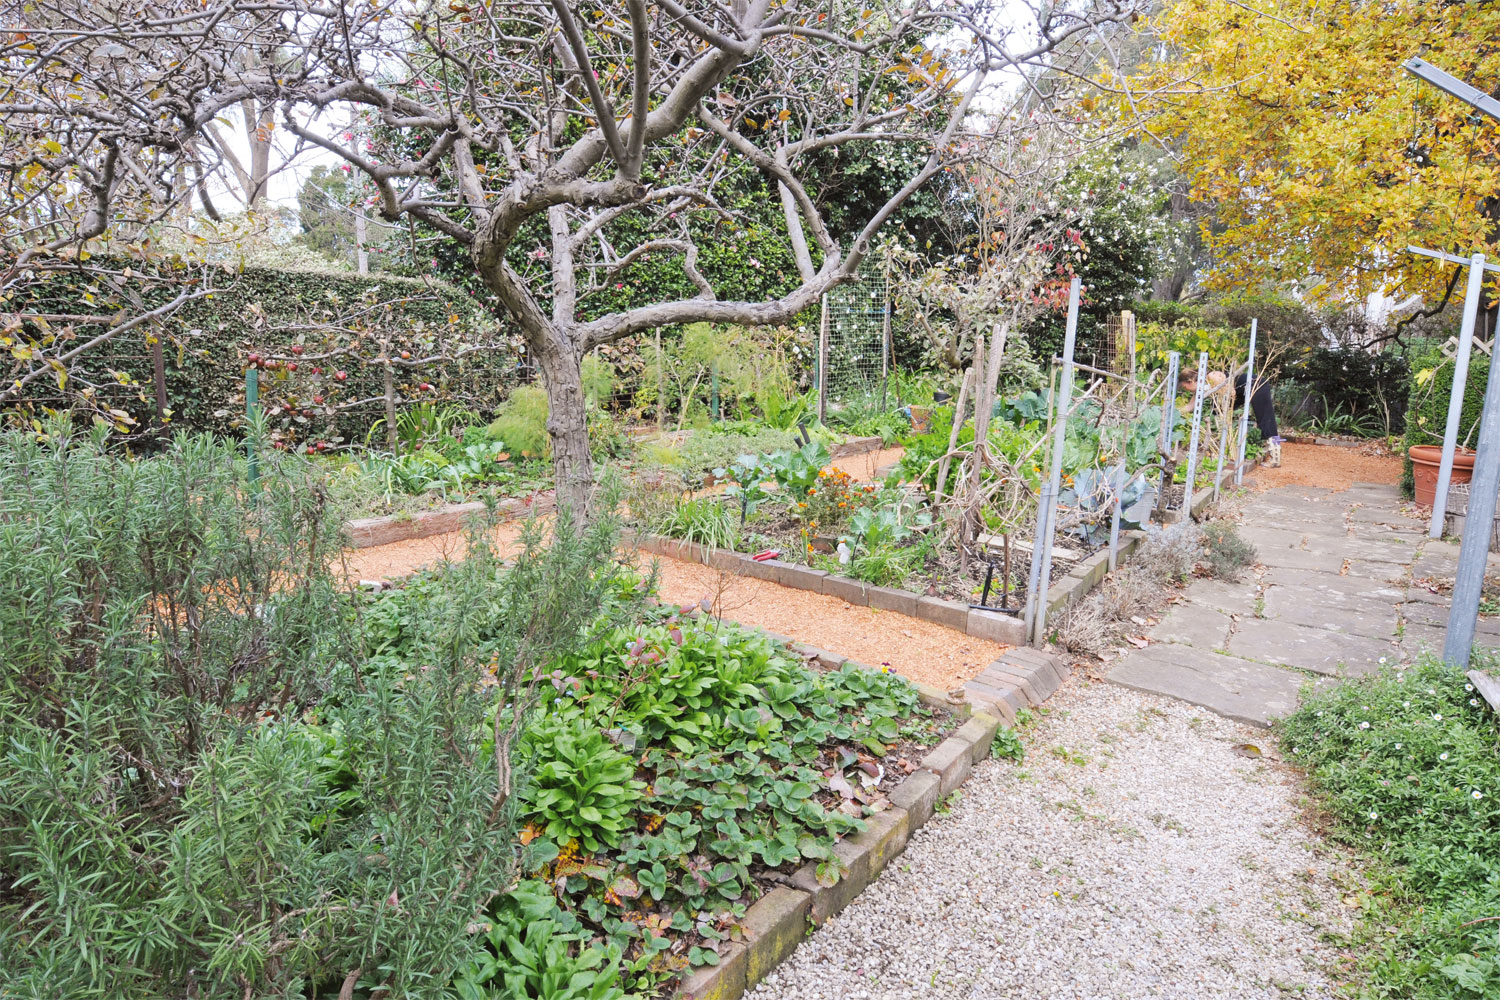 Garden glory: a sustainability-focused organic garden